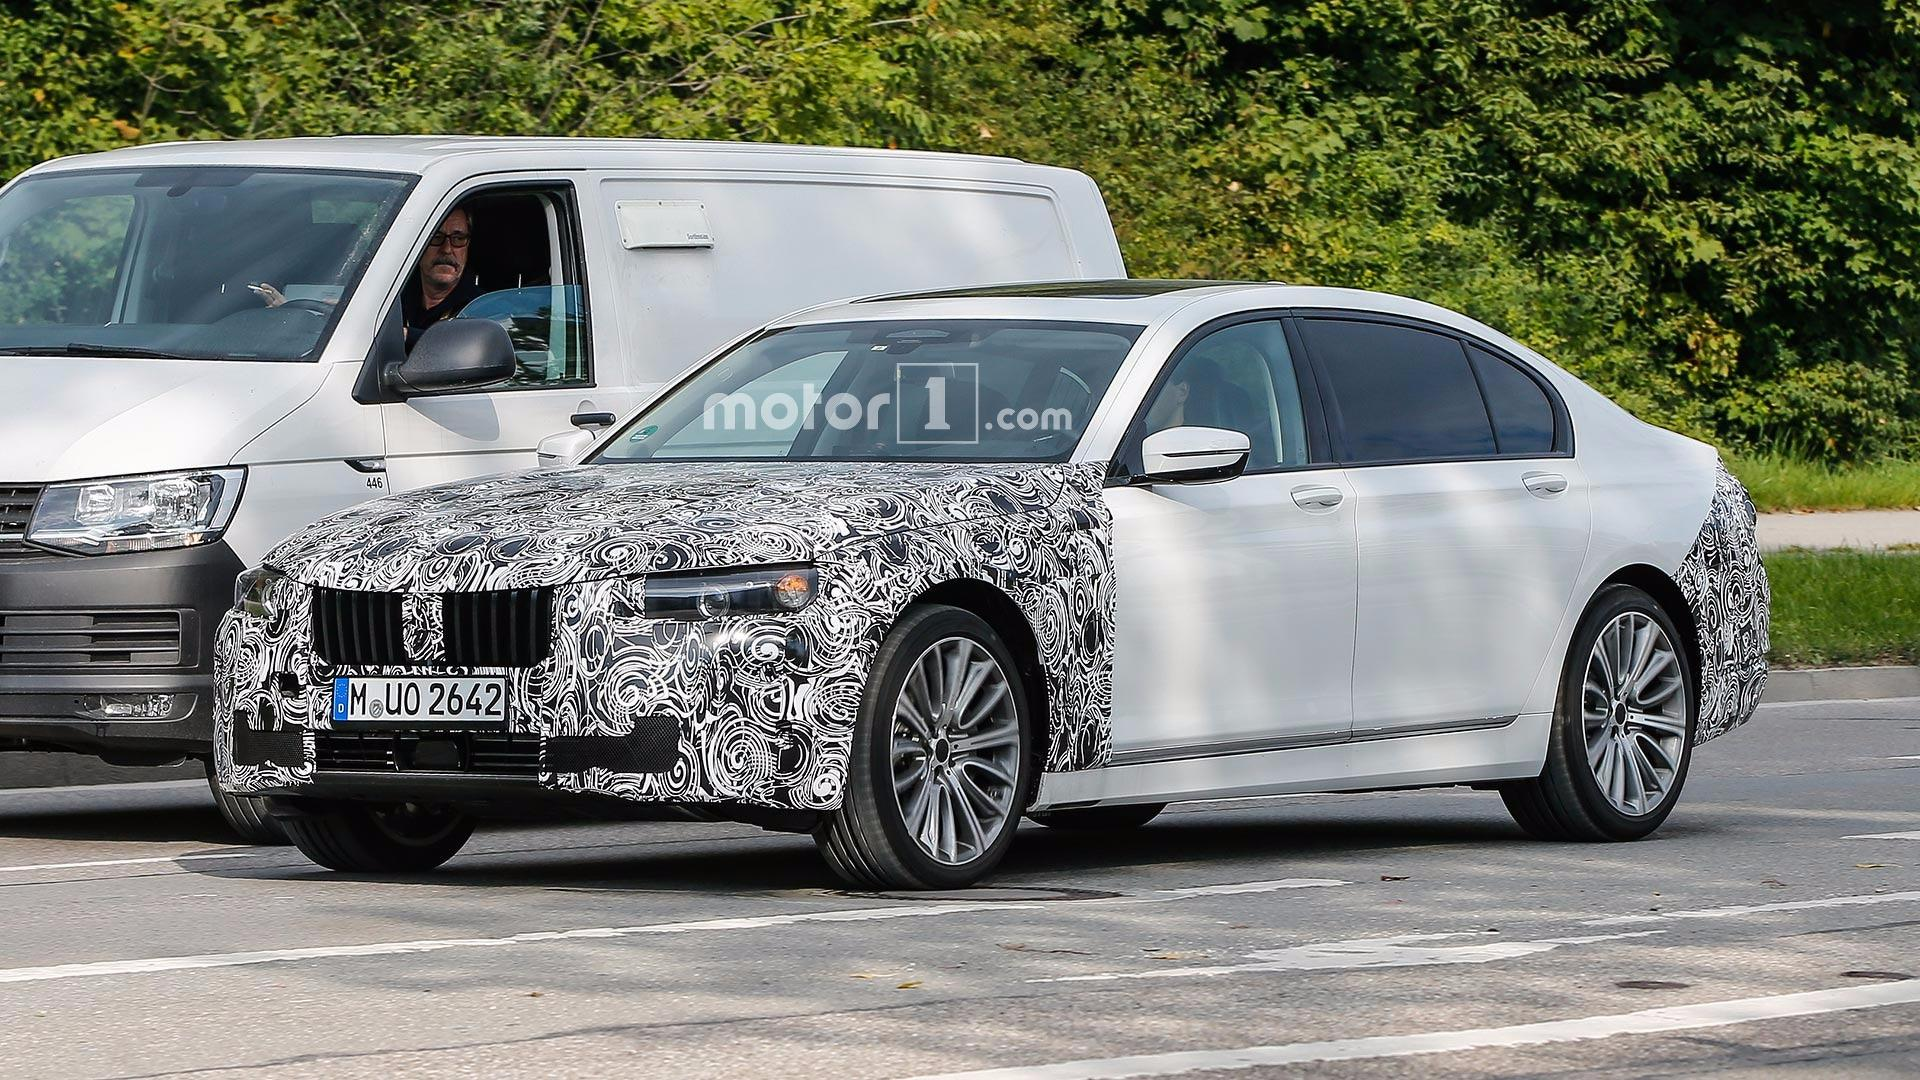 2020 BMW 7 Series Images